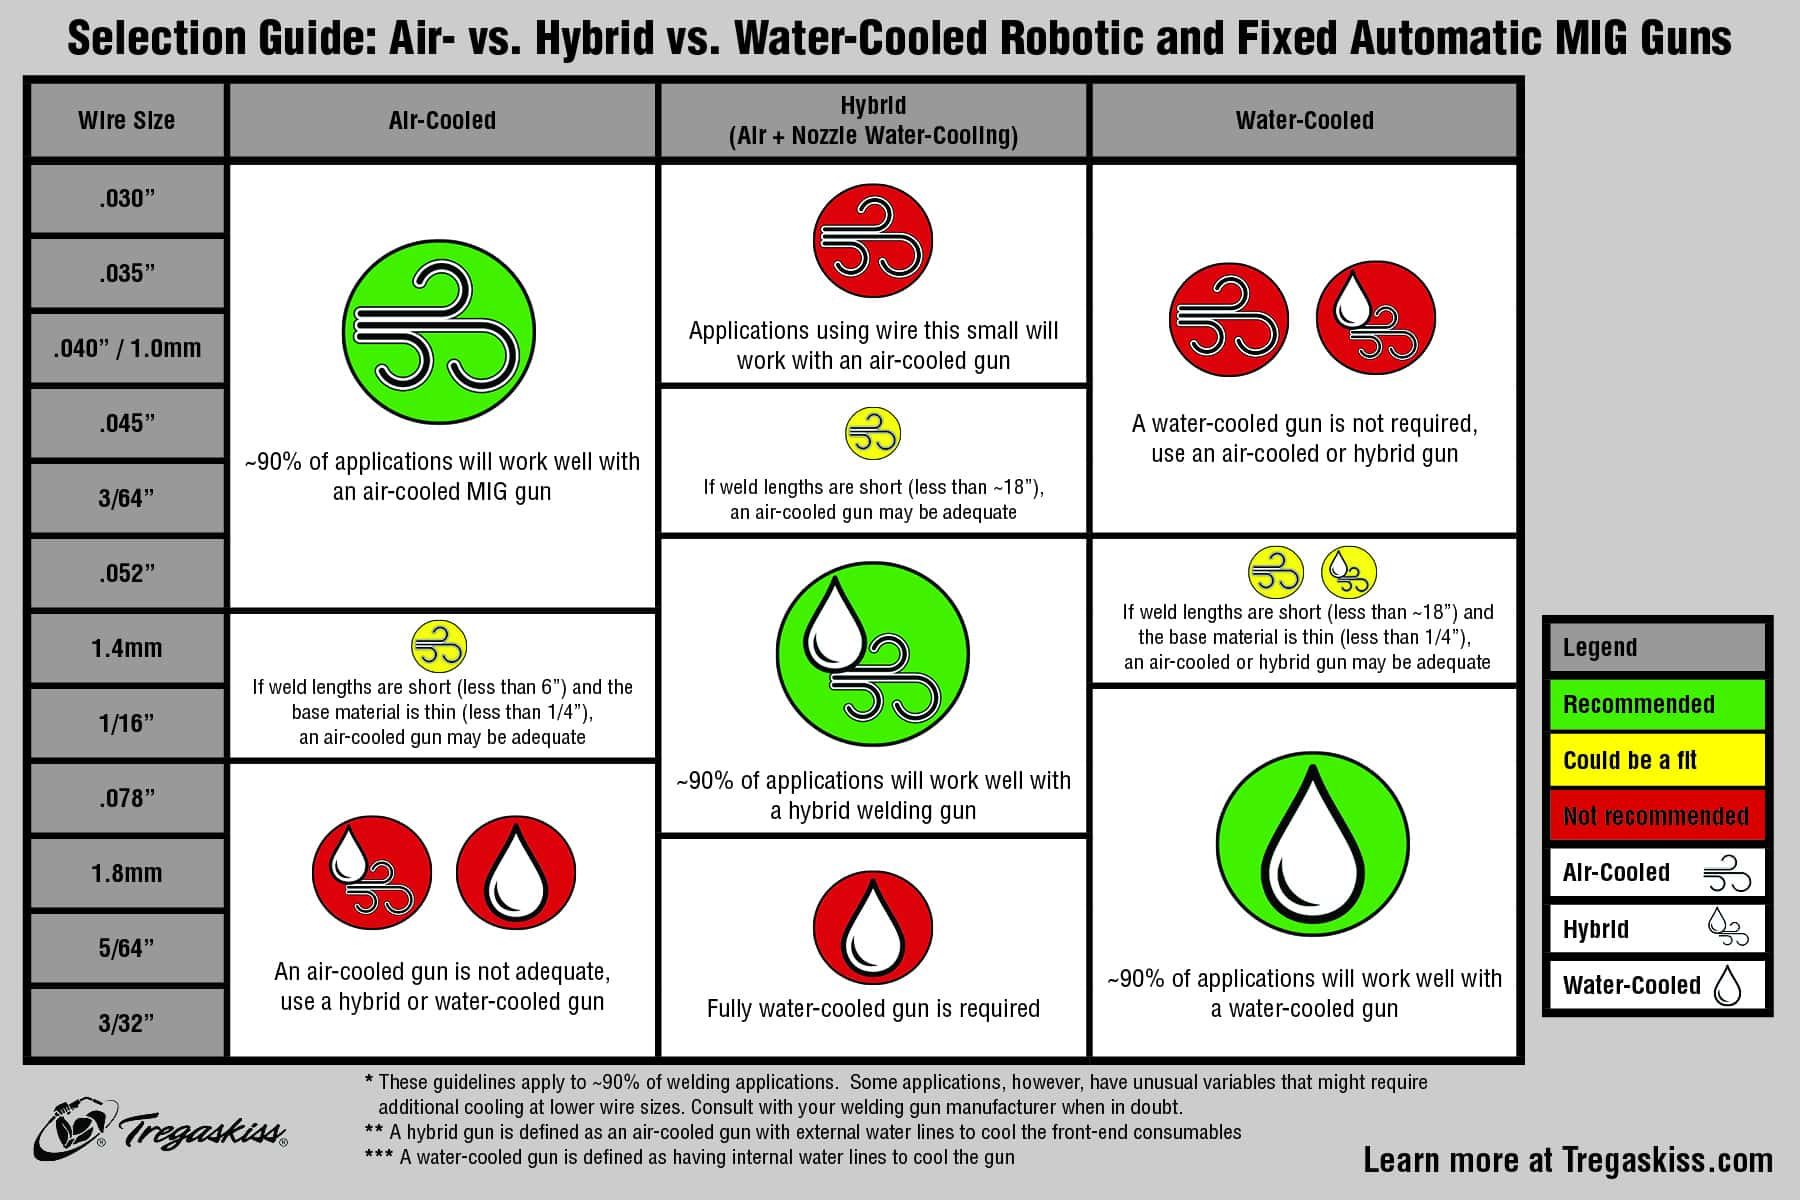 Chart with information on selecting air-cooled, water-cooled, hybrid robotic MIG guns